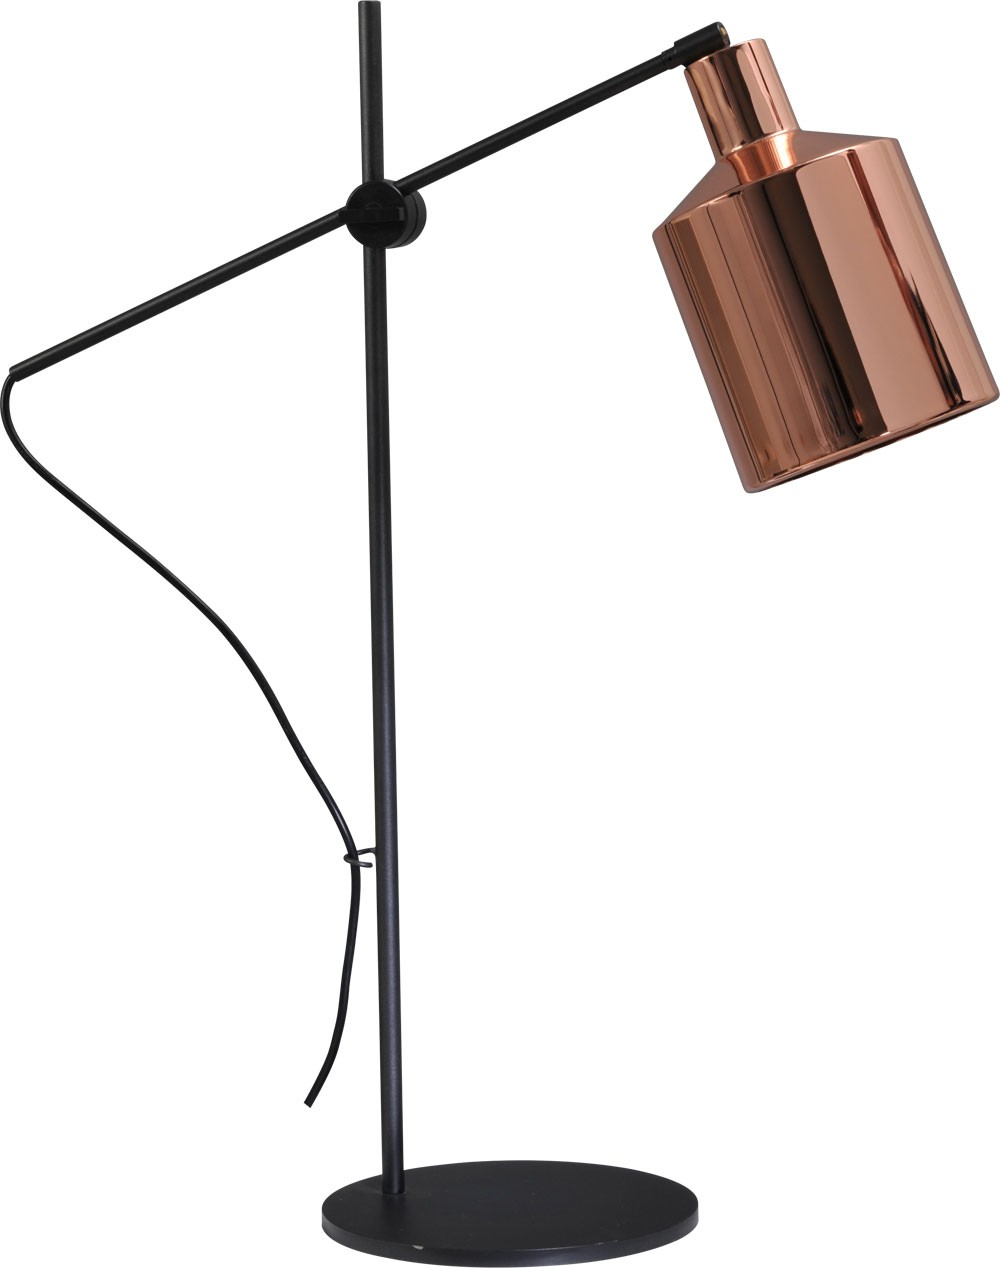 Mantis table light - copper